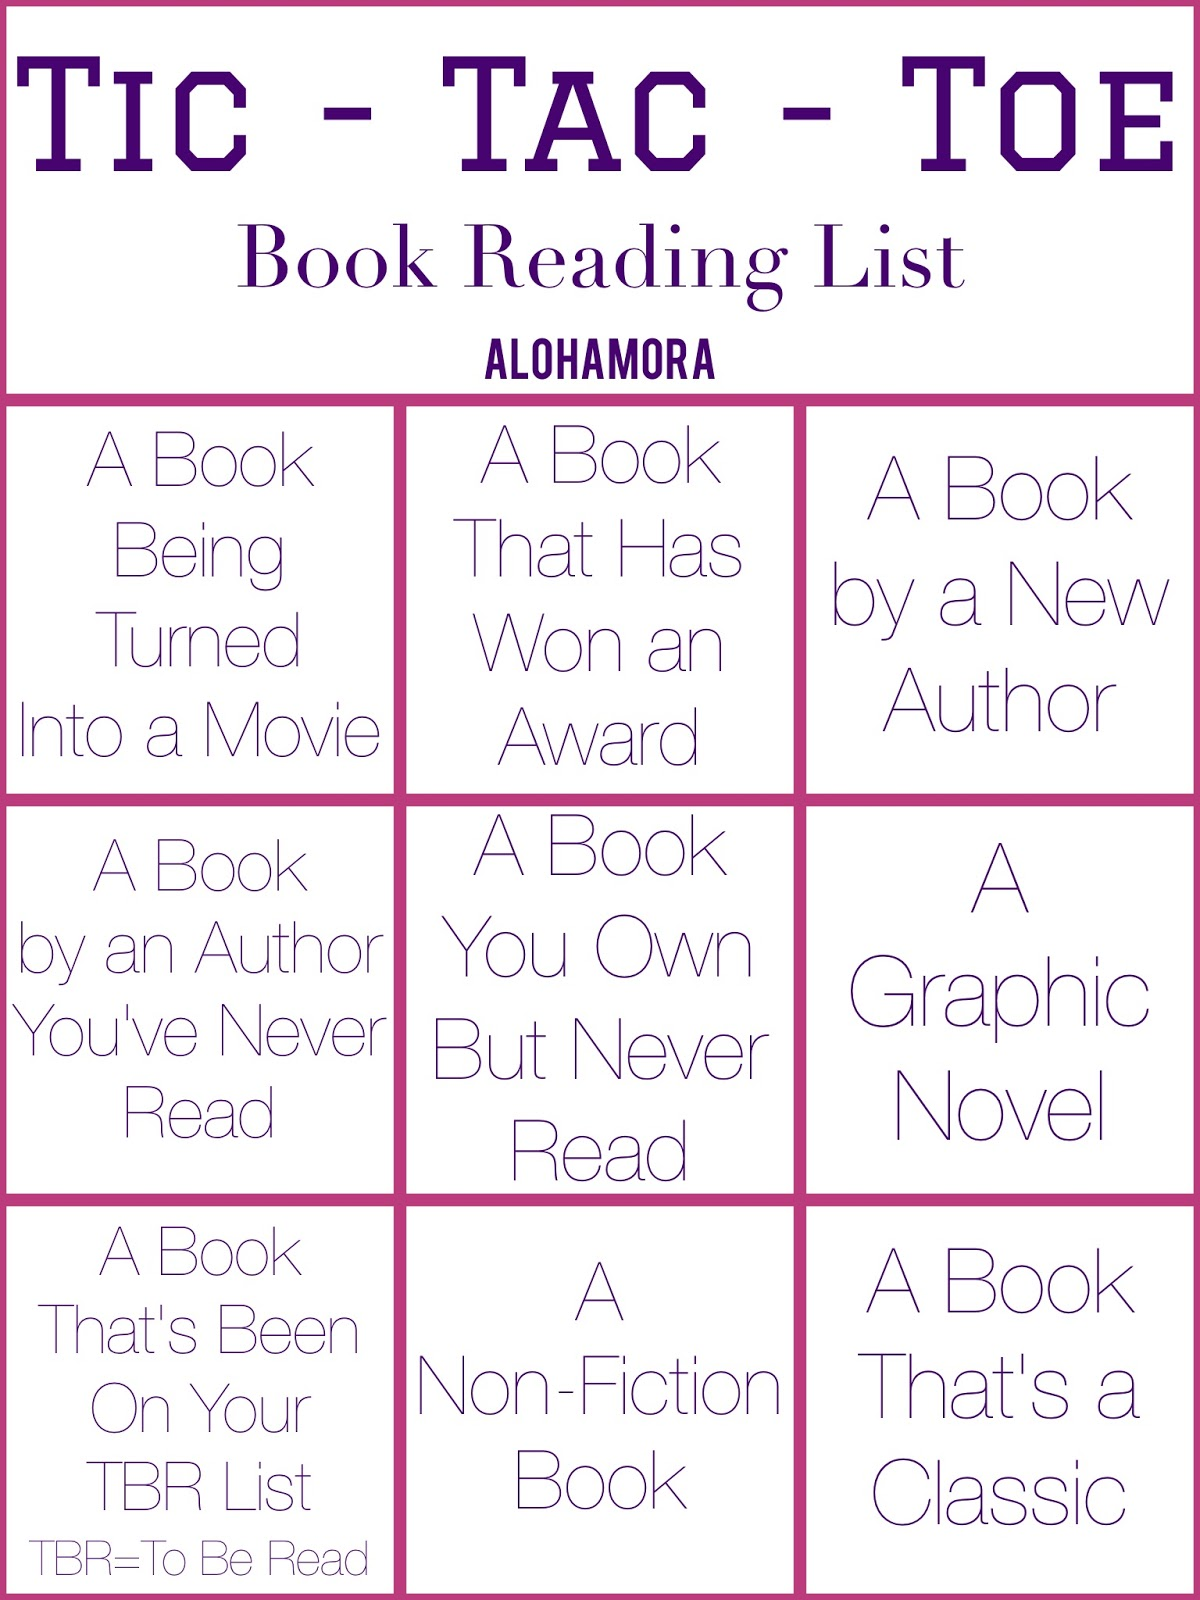 Alohamora: Open a Book: Tic-Tac-Toe Book List... What to Read Next?